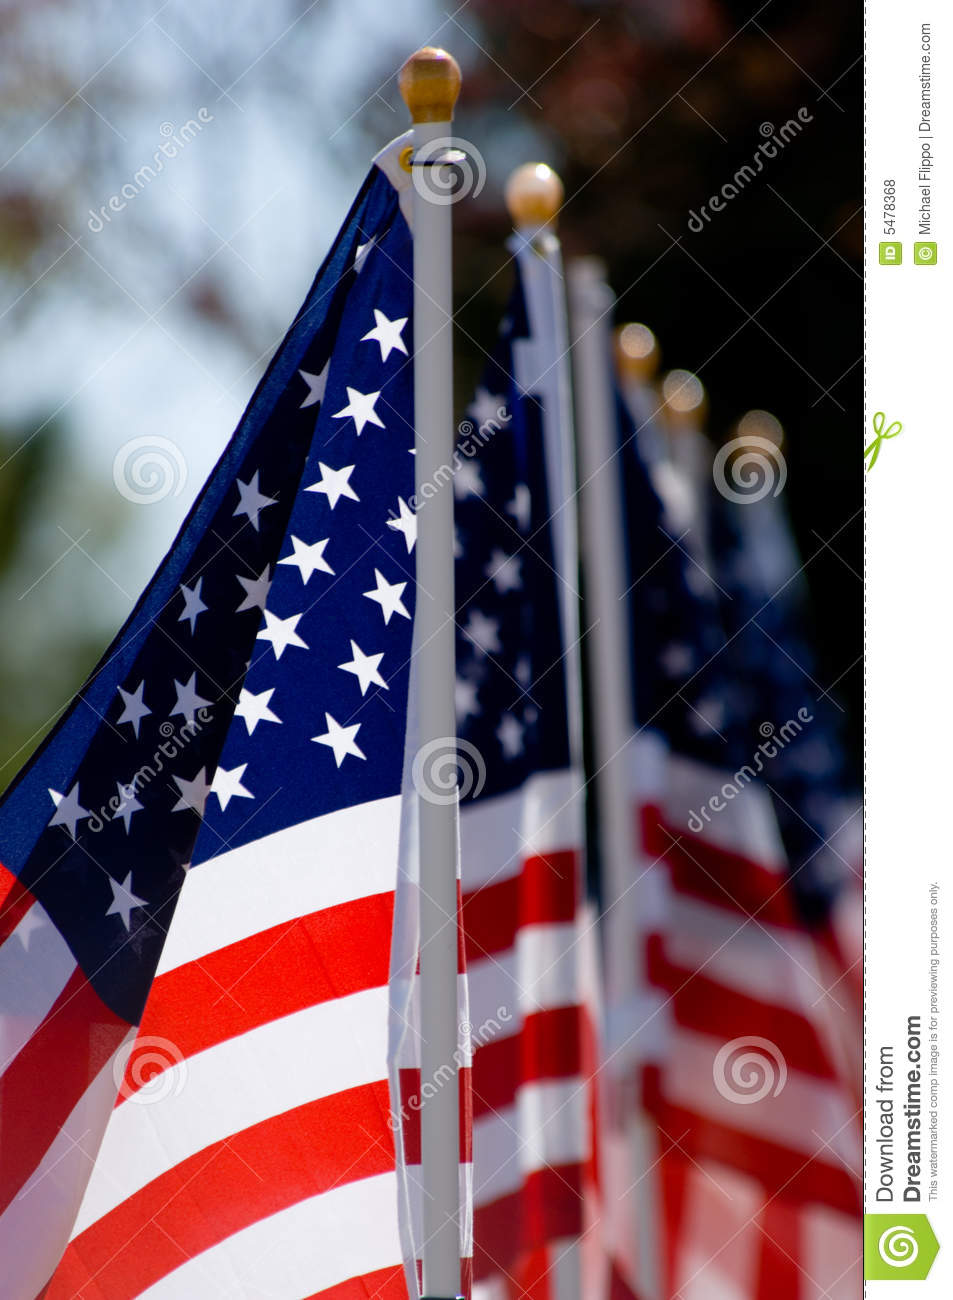 american flag display for holiday royalty free stock